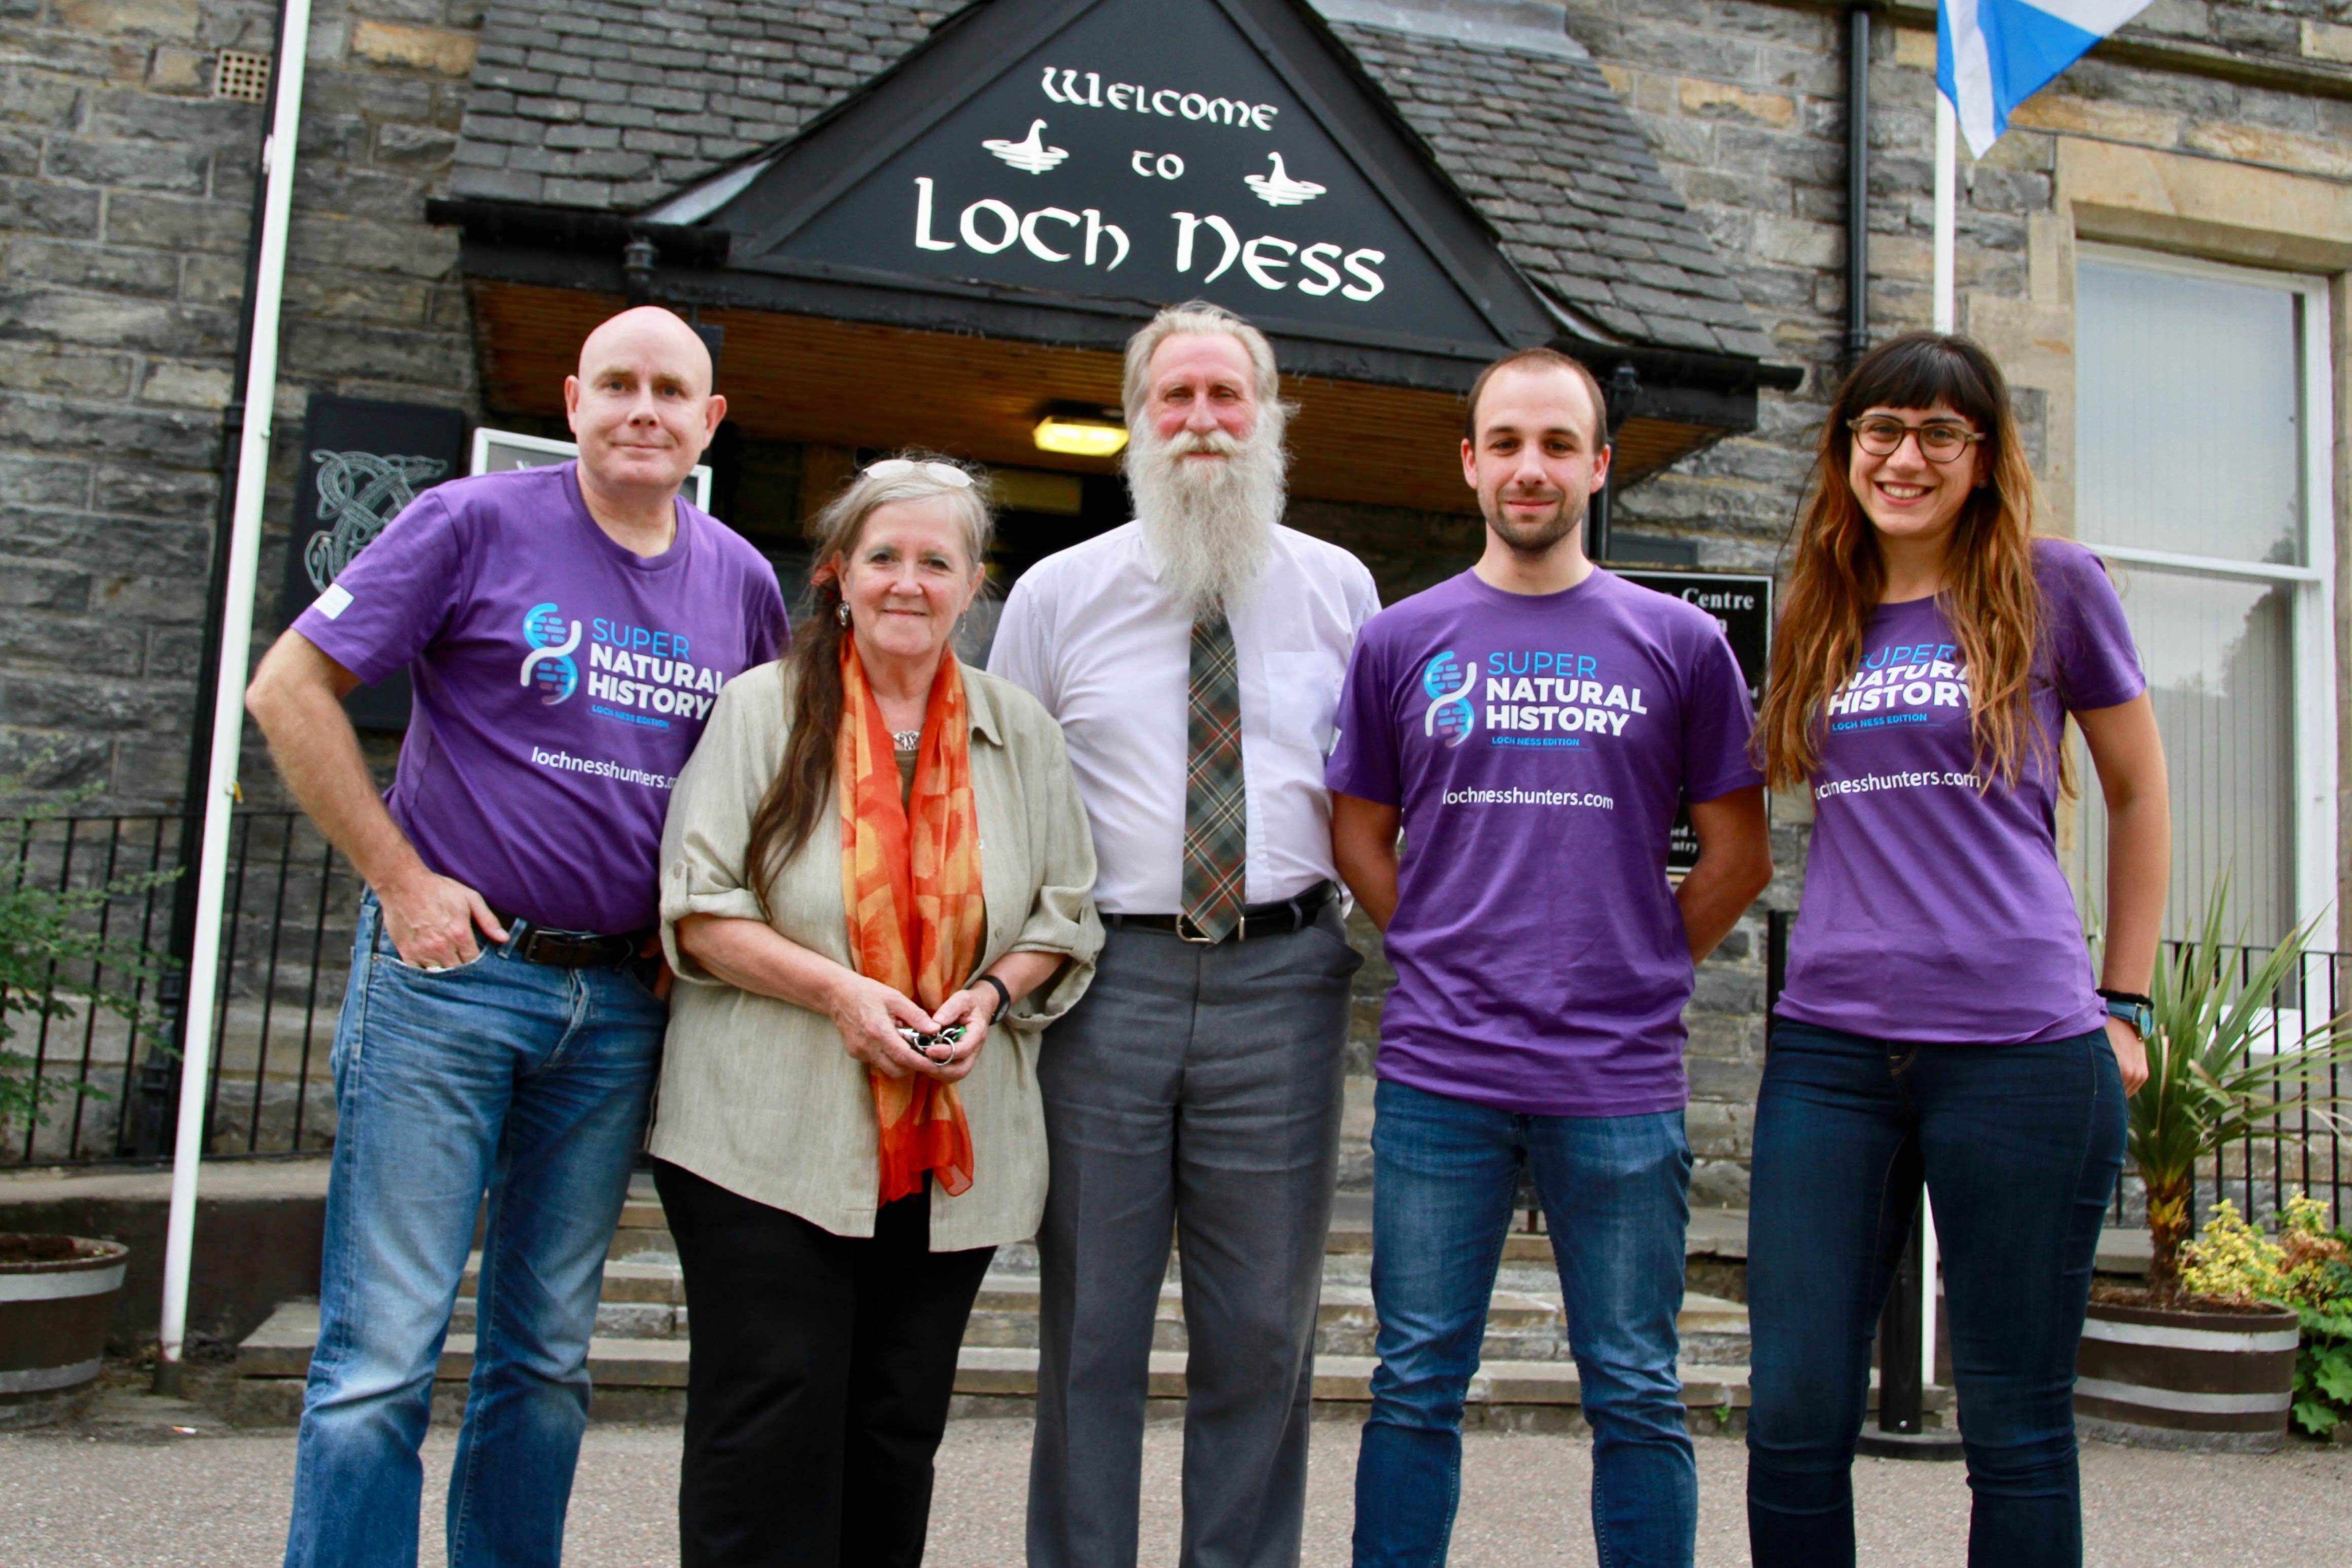 Adrian Shine of the Loch Ness Centre and the Supernatural History Team